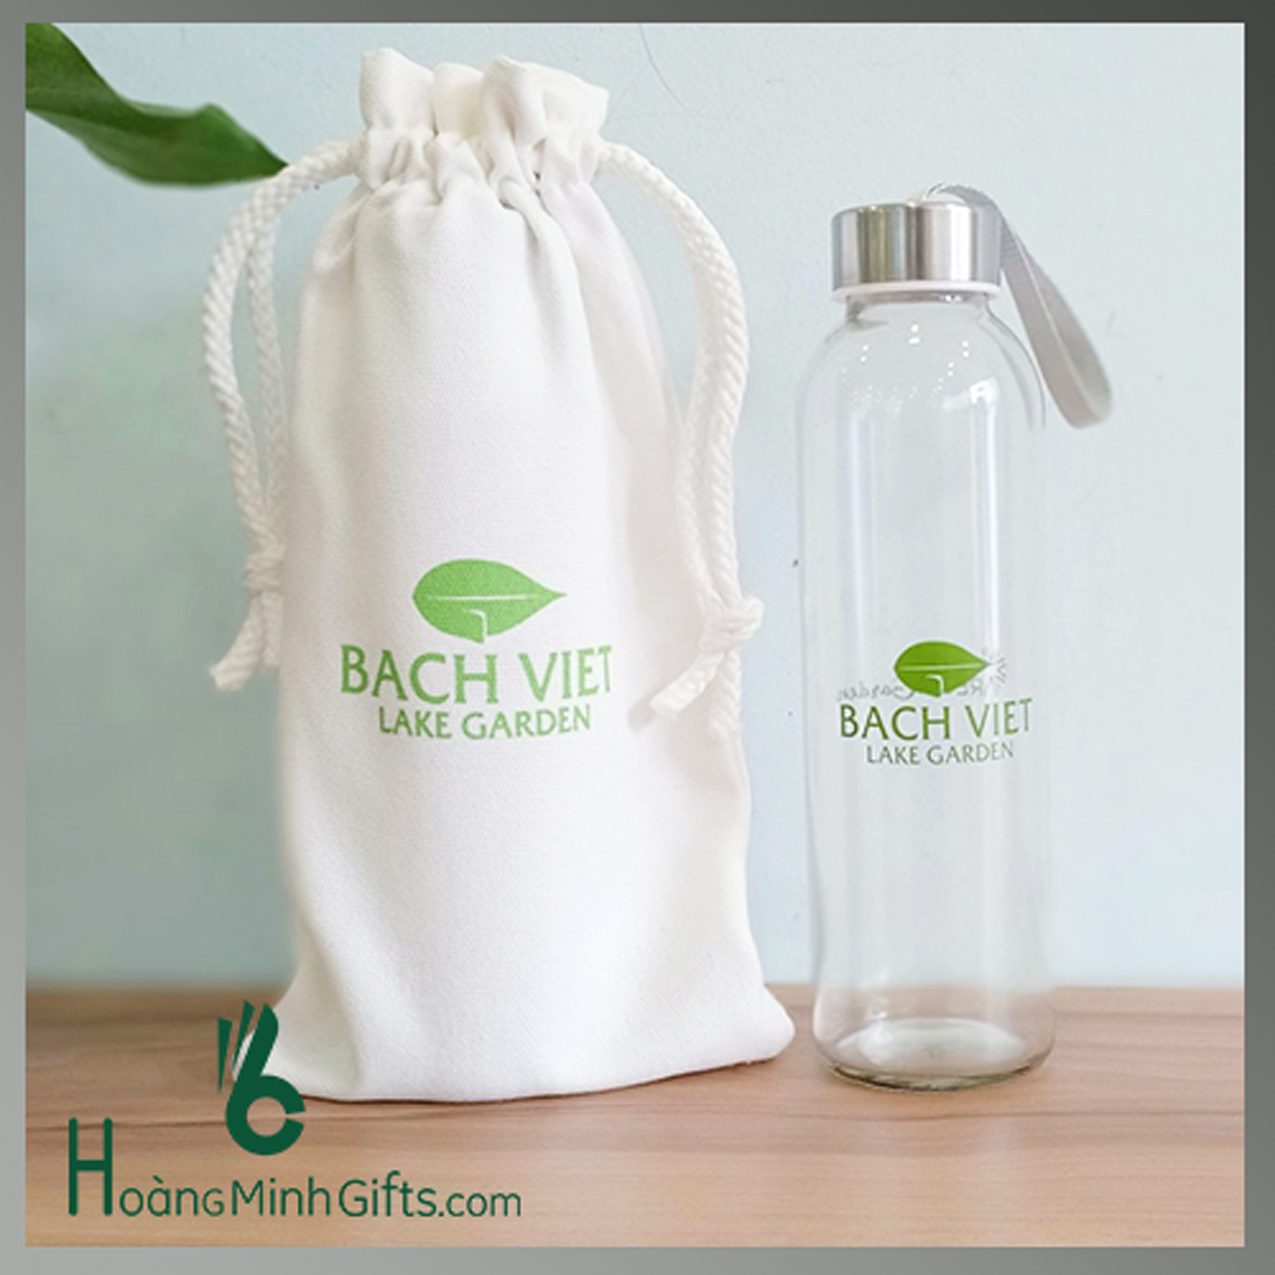 binh-dung-nuoc-thuy-tinh-mybottle-kh-bach-viet